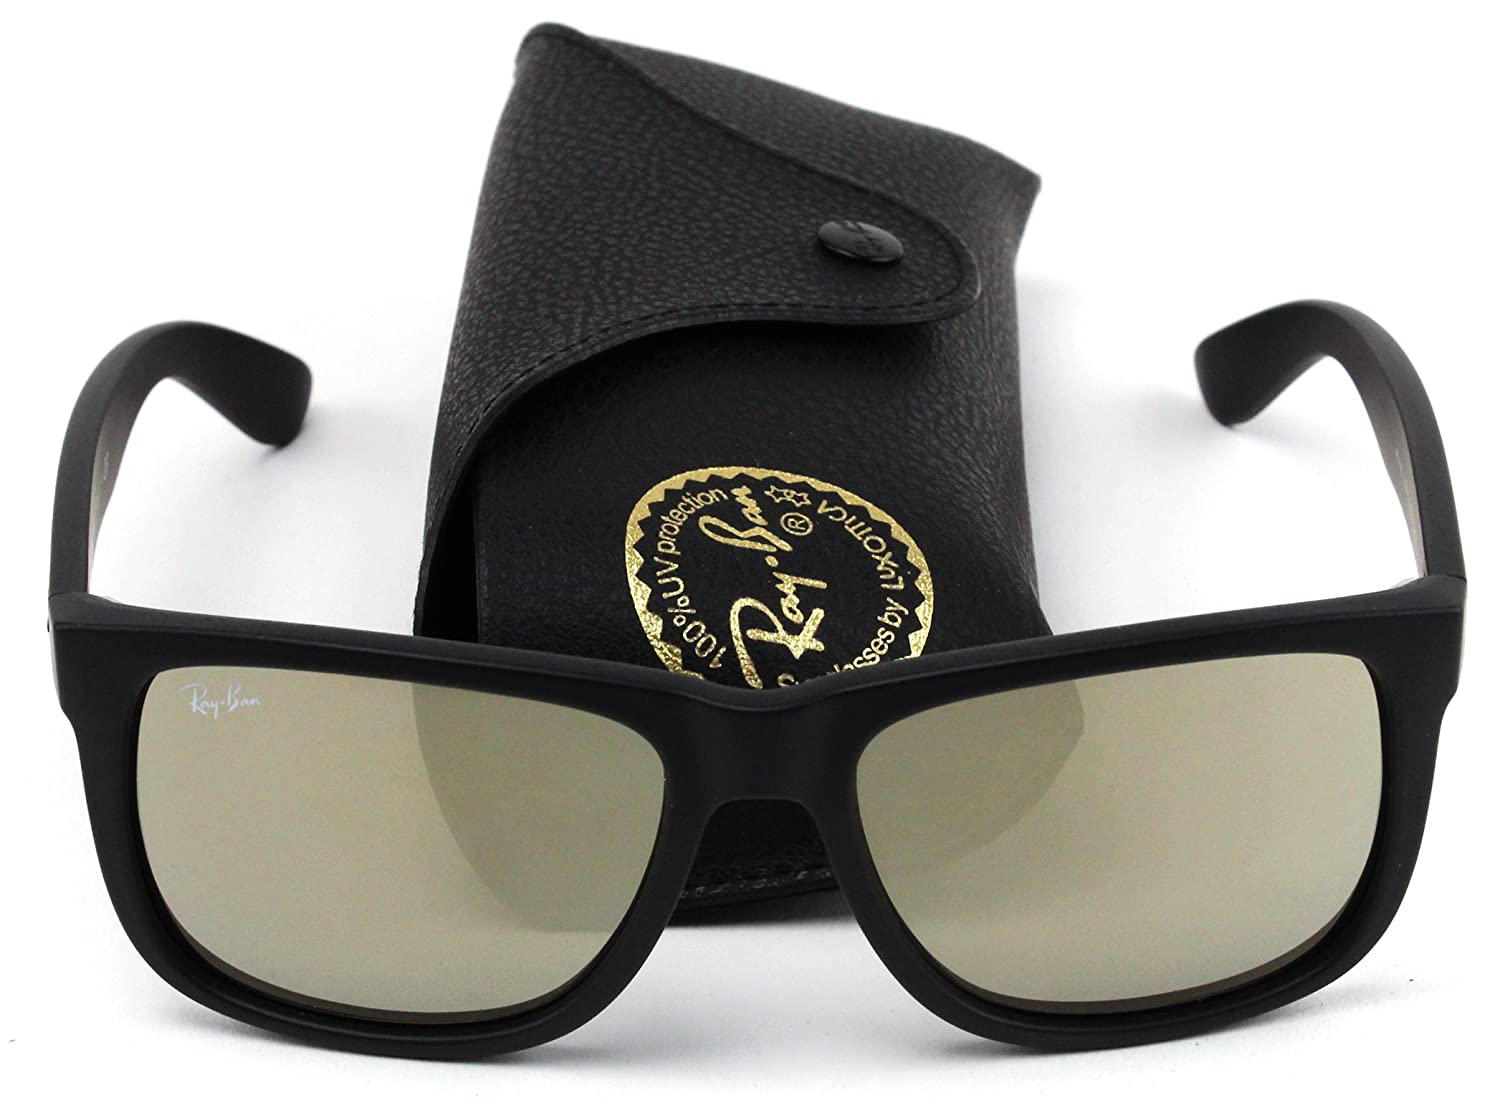 1f0193a34e Amazon.com  Ray-Ban RB4165 622 5A Justin Unisex Sunglasses Black Rubber  Frame   Gold Mirror Lens  Shoes